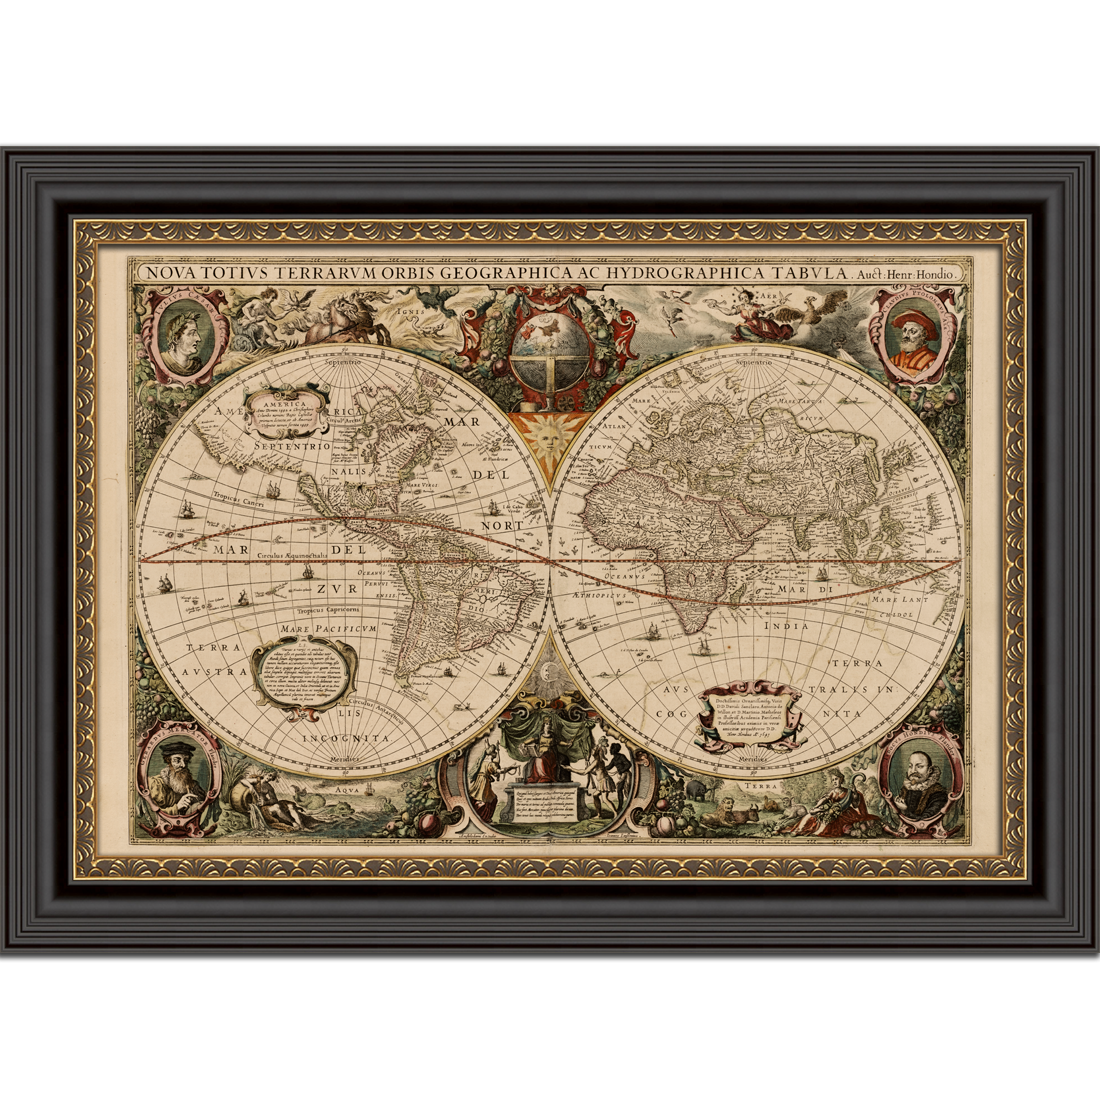 world map nova totius 1641 framed